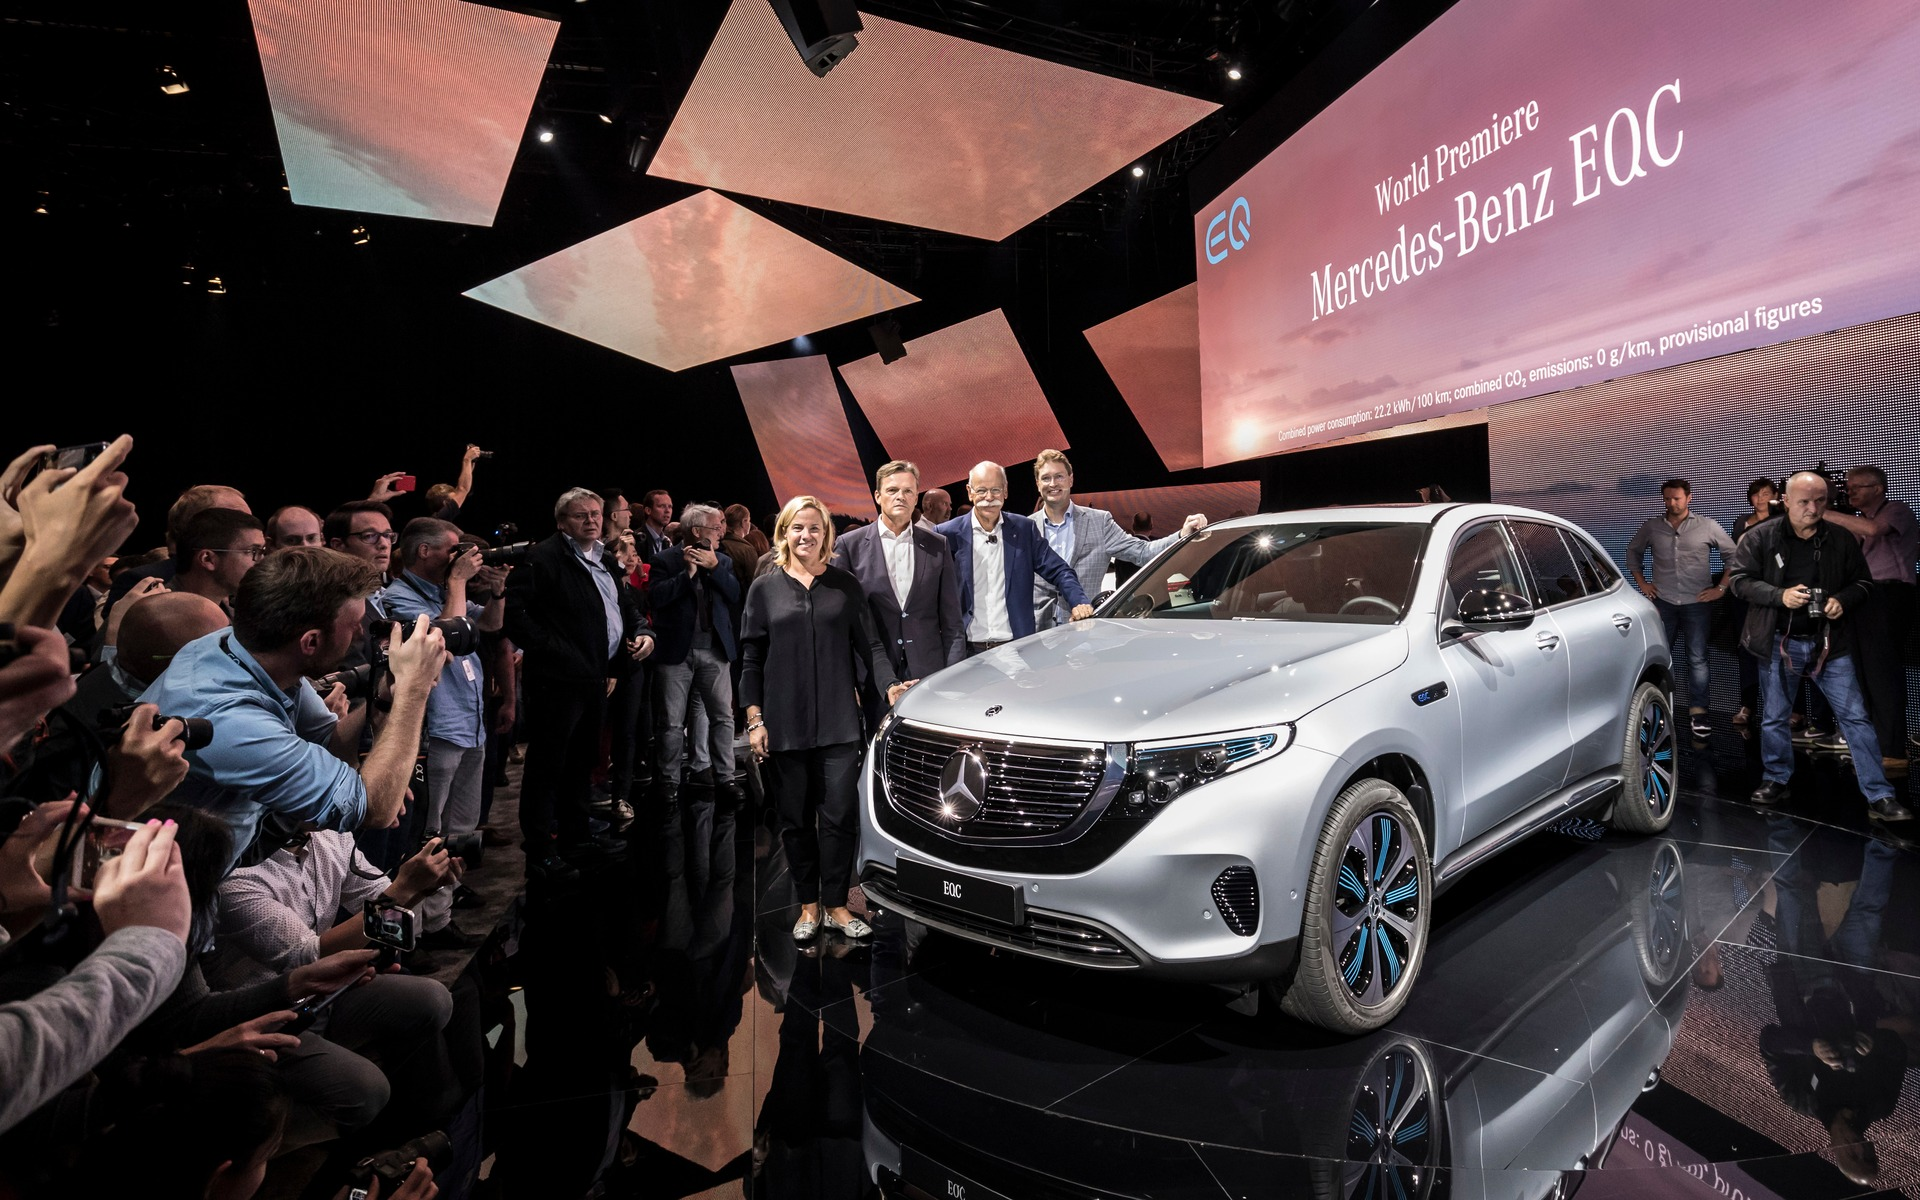 Mercedes Benz EQ: The Silver Star Goes Electric